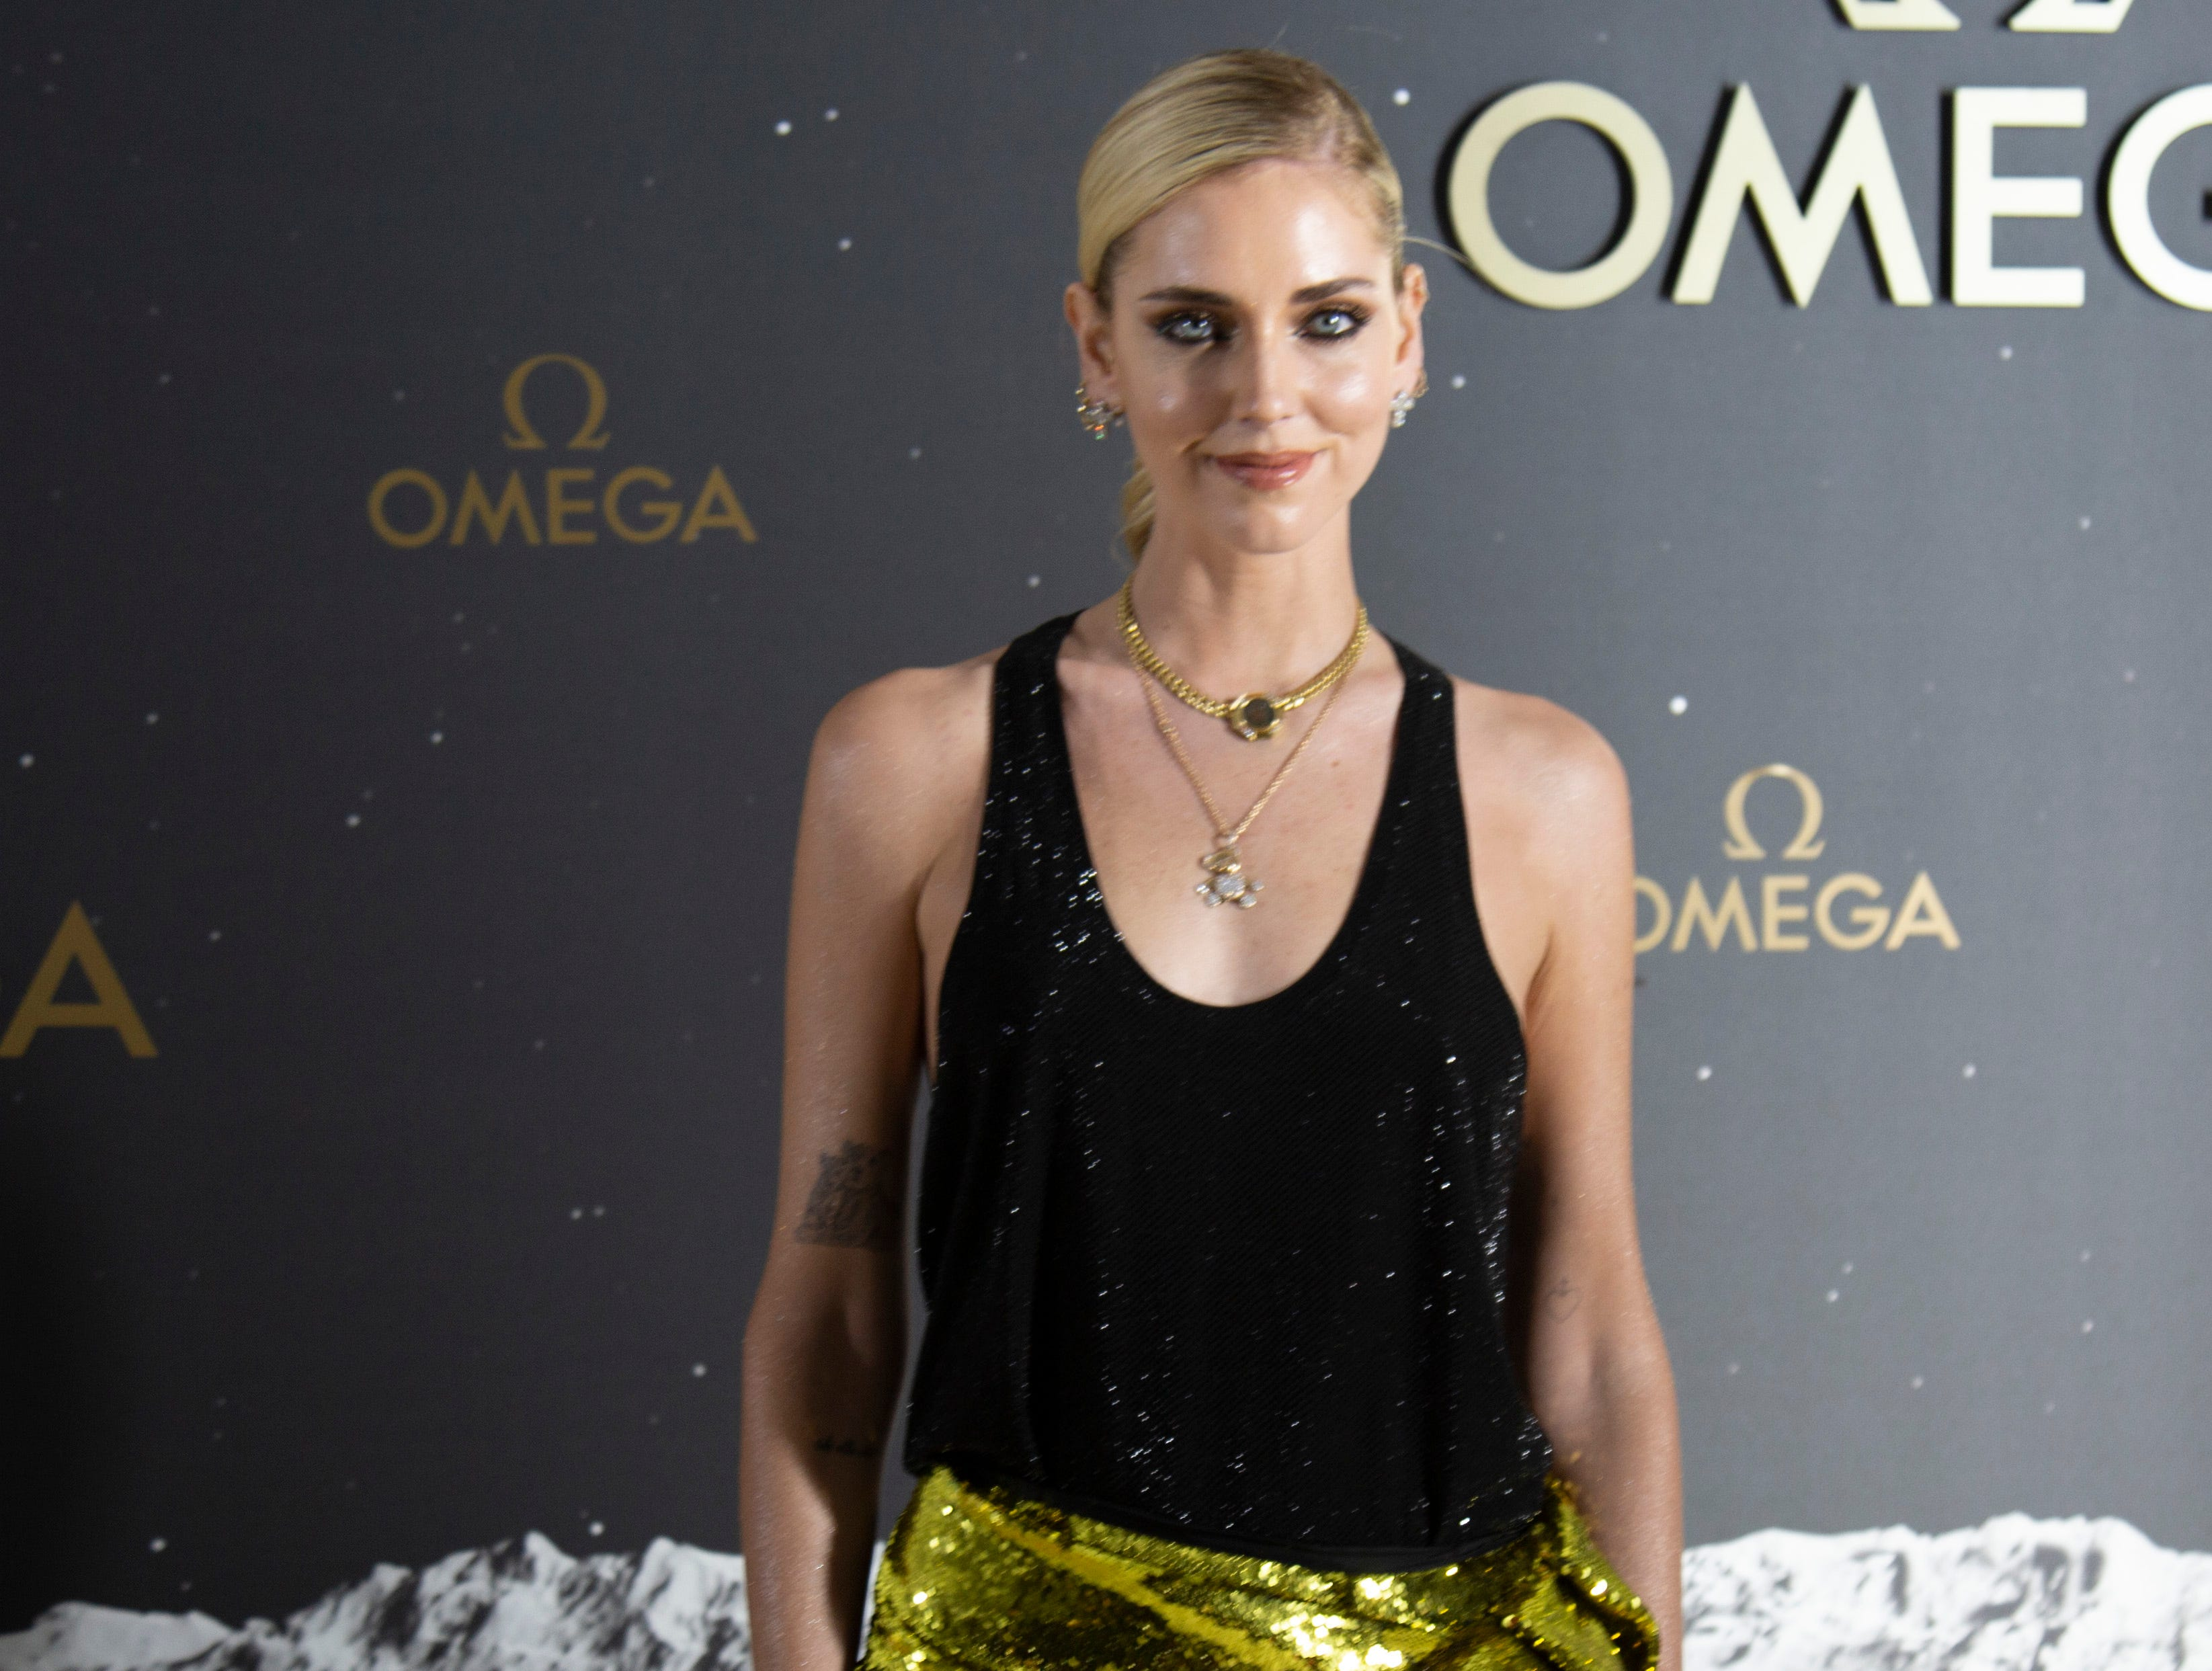 Model and social media influencer Chiara Ferragni. The Swiss watch brand Omega, which accompanied Apollo 11 astronaut Buzz Aldrin when he walked on the moon's surface nearly 50 years ago, hosted an event honoring the 50th anniversary of the moon landing at the Apollo/Saturn V Center at Kennedy Space Center. Those who attended the black-tie dinner included actor George Clooney and Amal Clooney, as well as former astronauts Thomas Stafford and Charles Moss Duke.